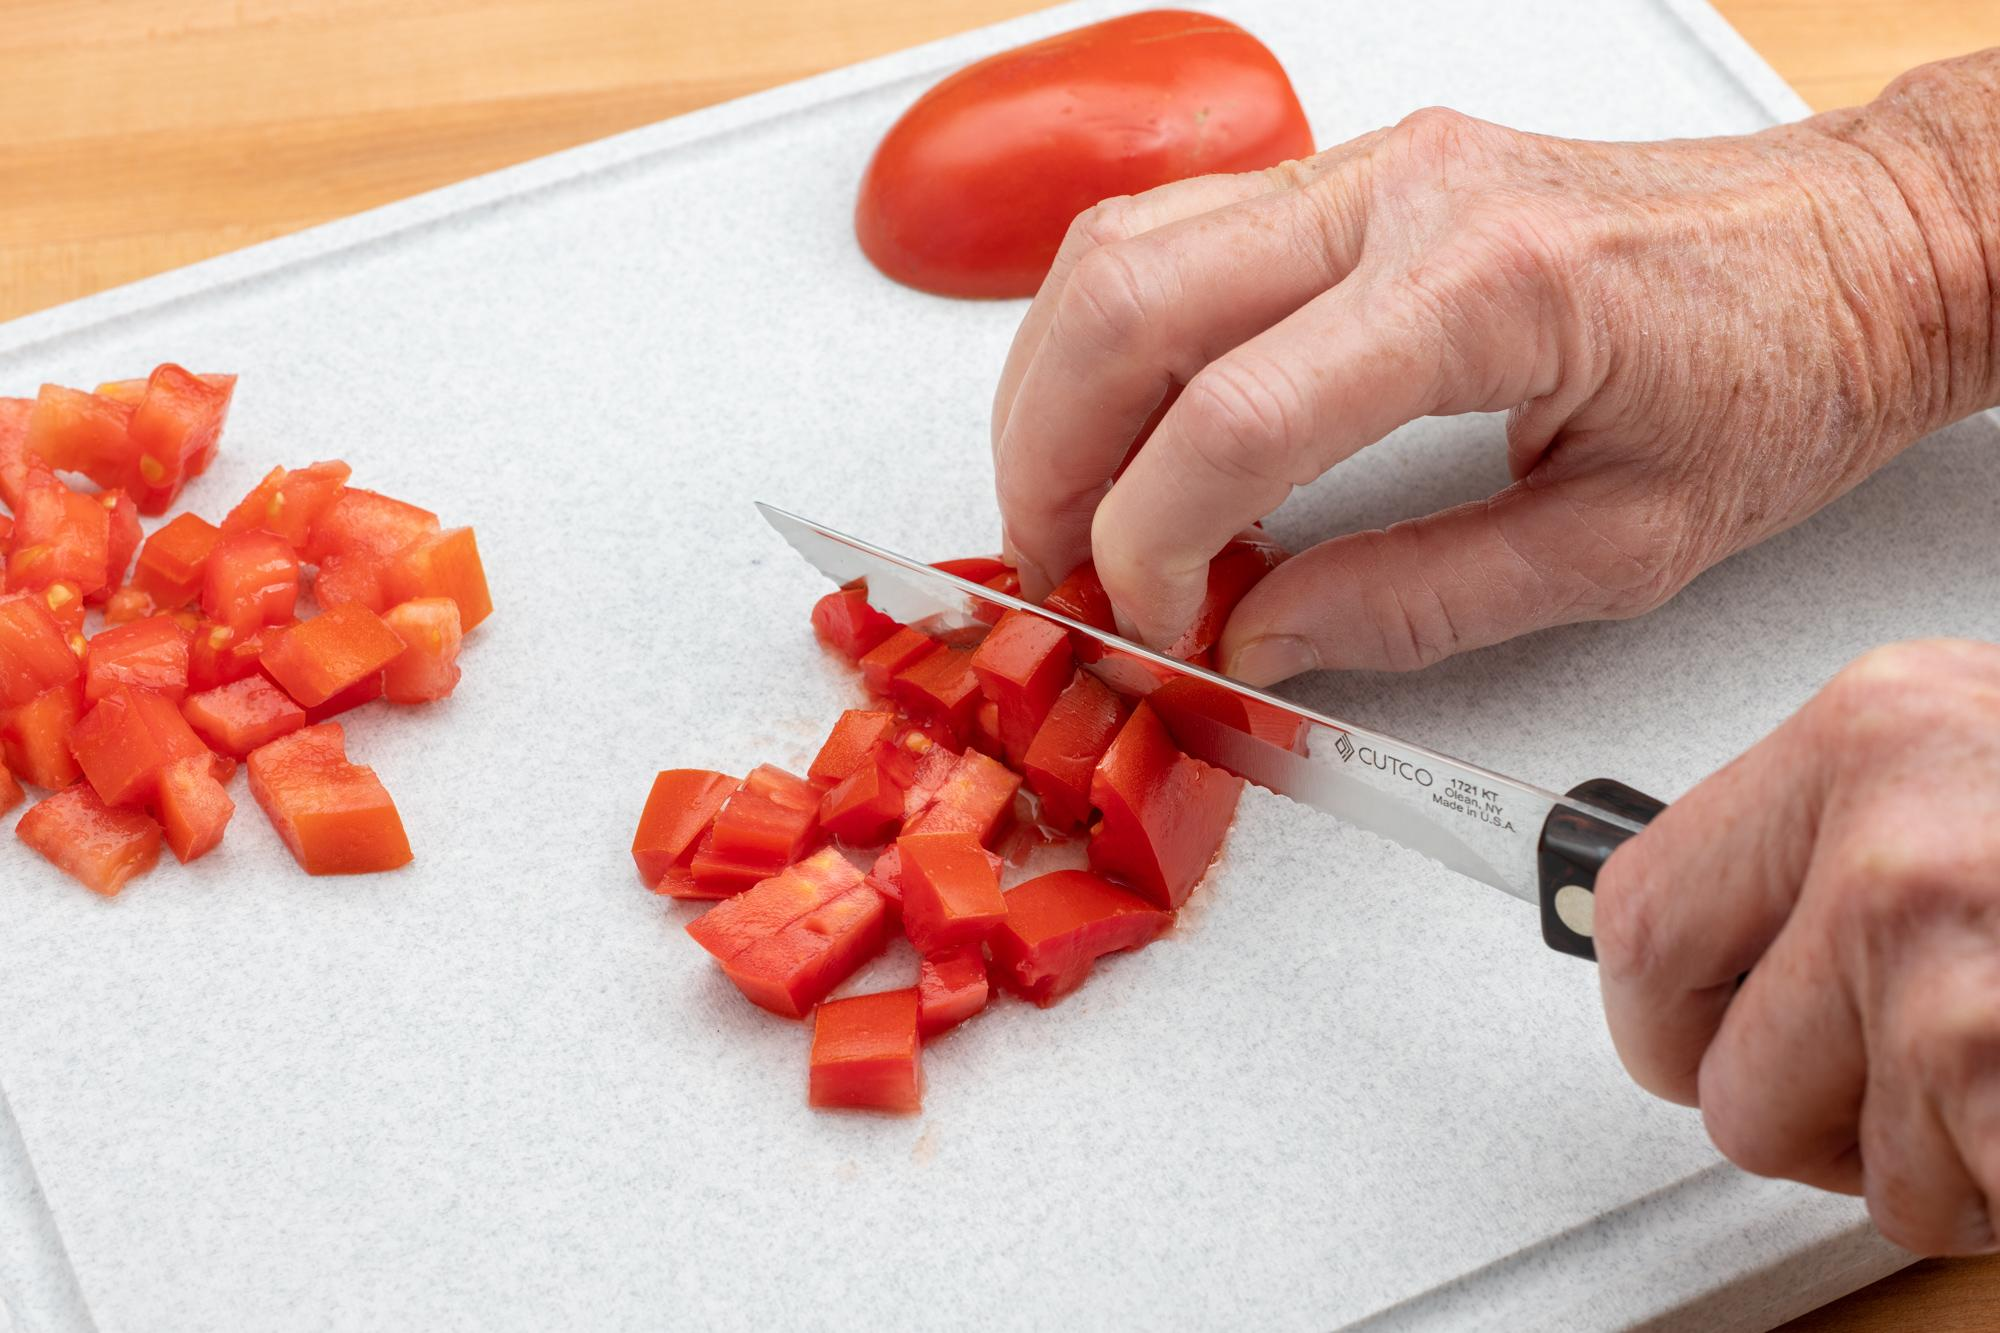 Using the Trimmer to dice tomatoes.